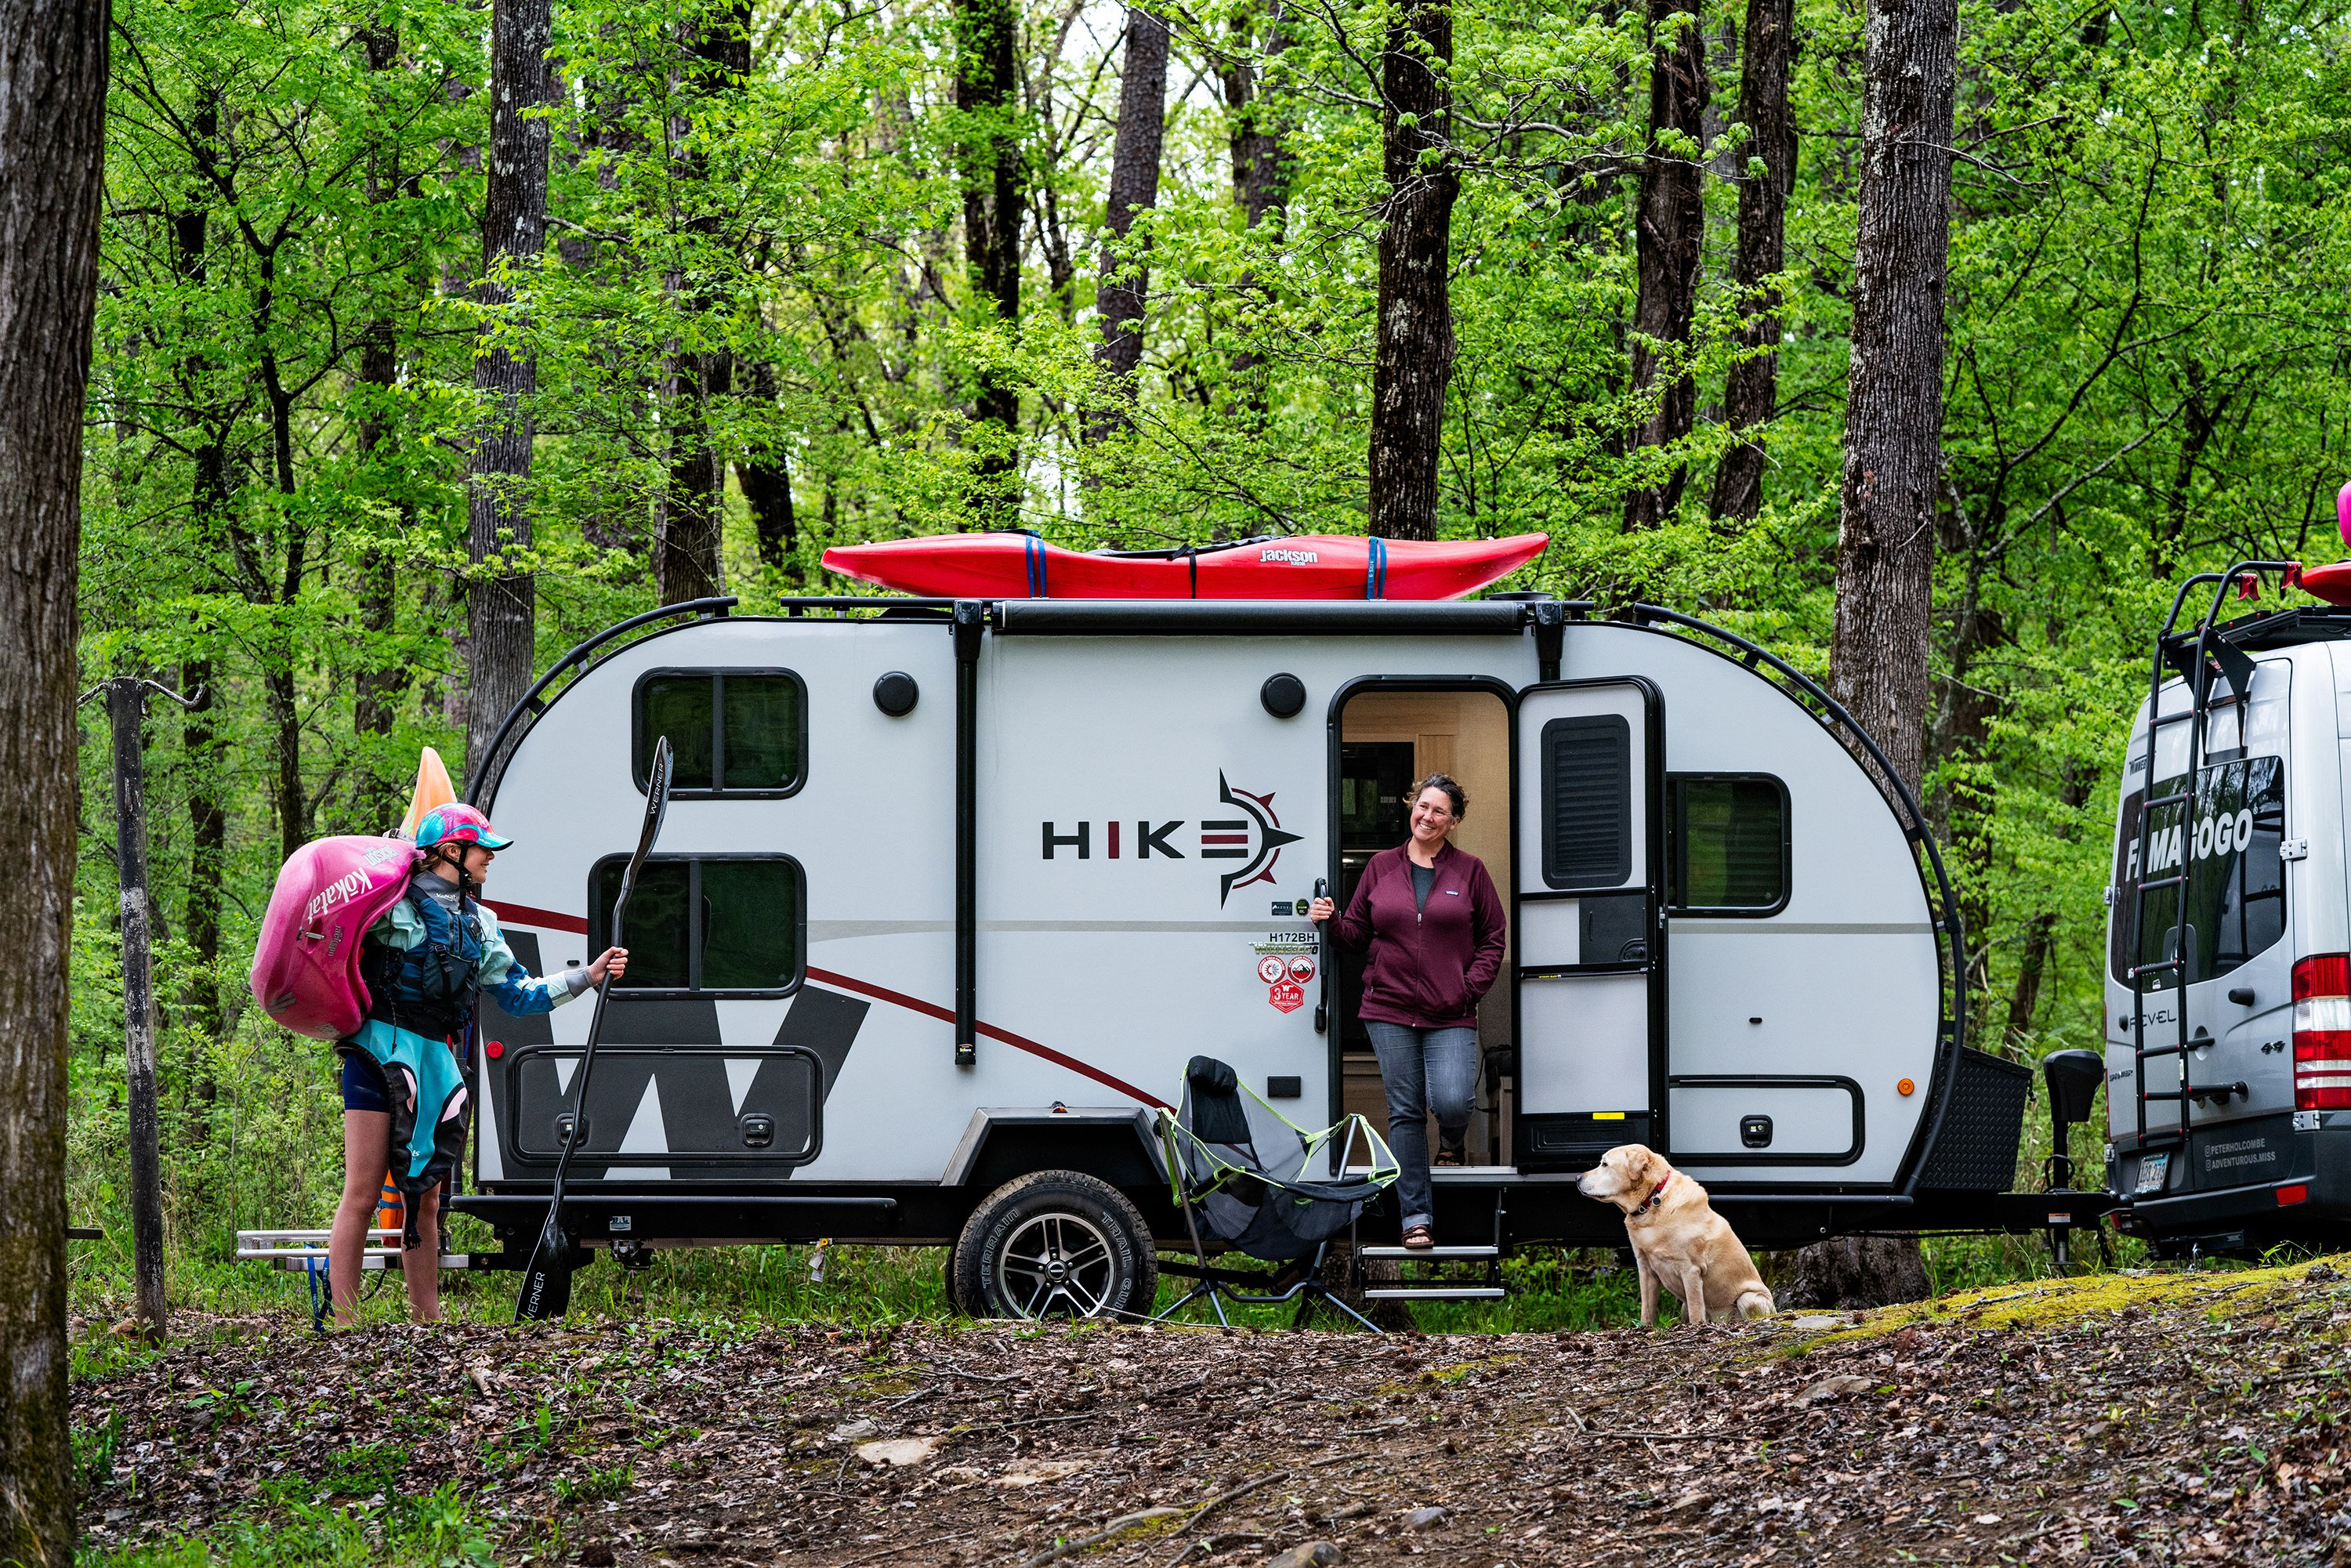 Winnebago Hike Camper Is an Affordable Trailer with an Exoskeleton